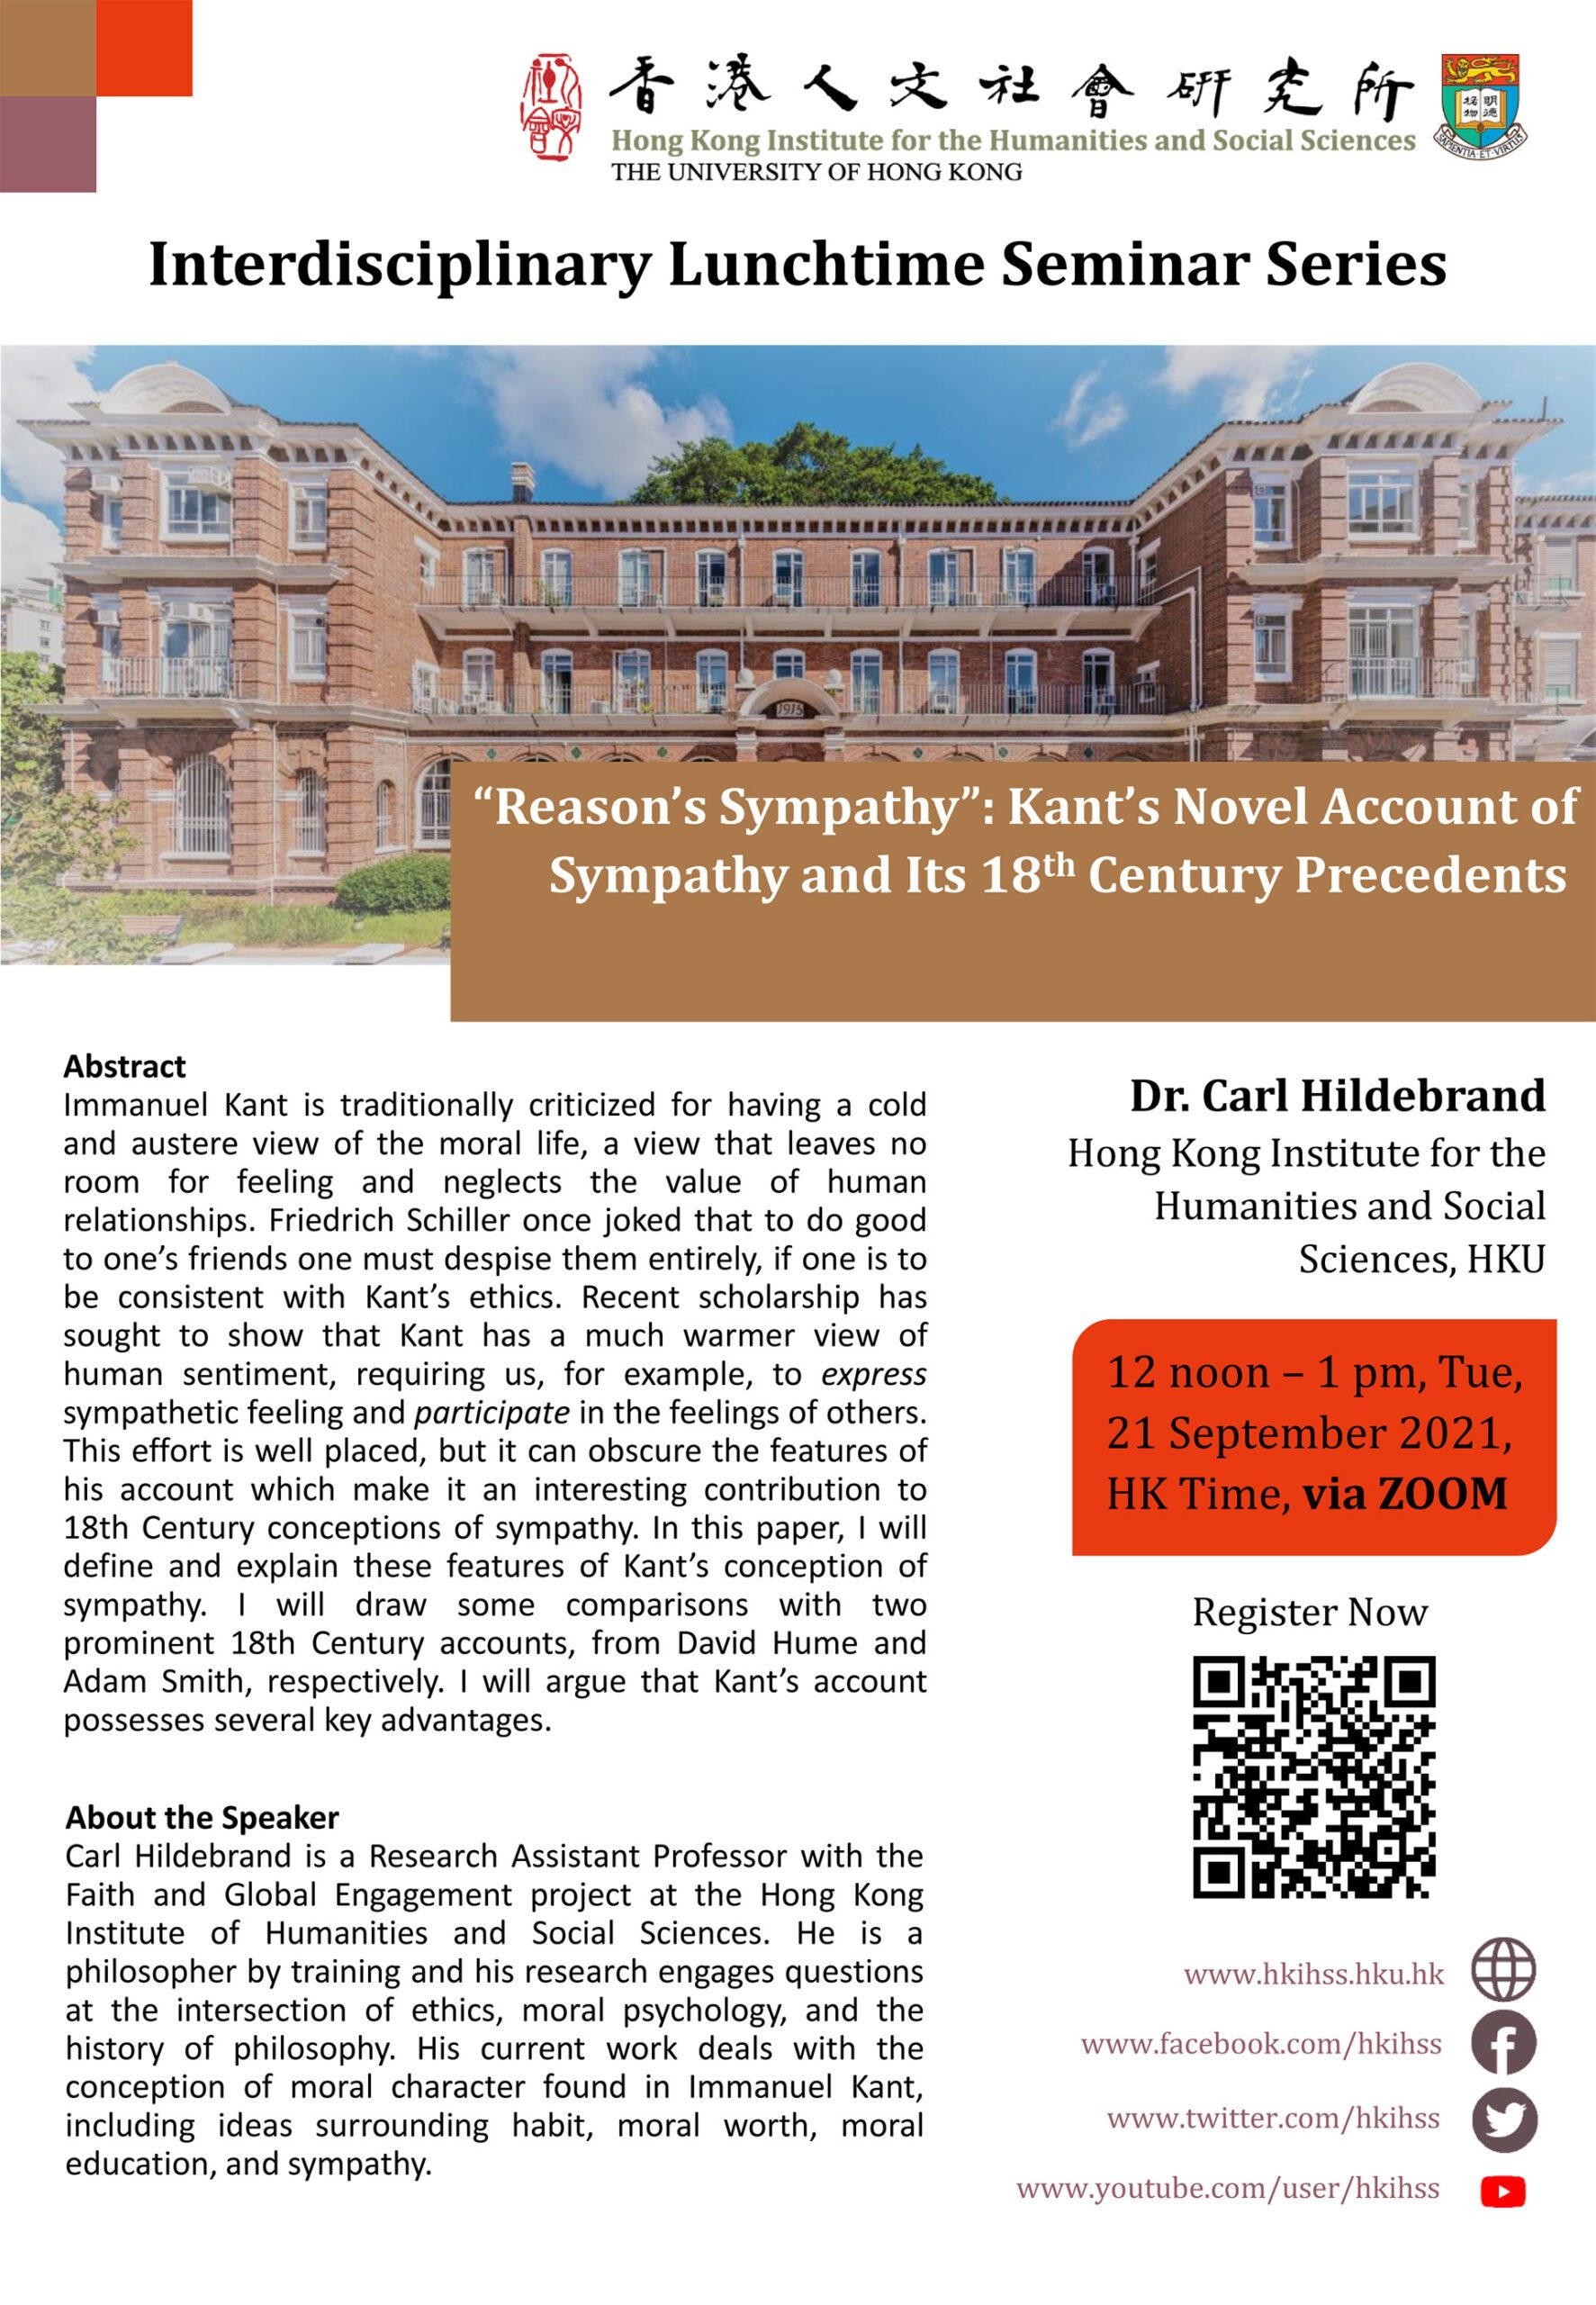 """Interdisciplinary Lunchtime Seminar on """"""""Reason's Sympathy"""": Kant's Novel Account of Sympathy and Its 18th Century Precedents"""" by Dr. Carl Hildebrand (September 21, 2021)"""